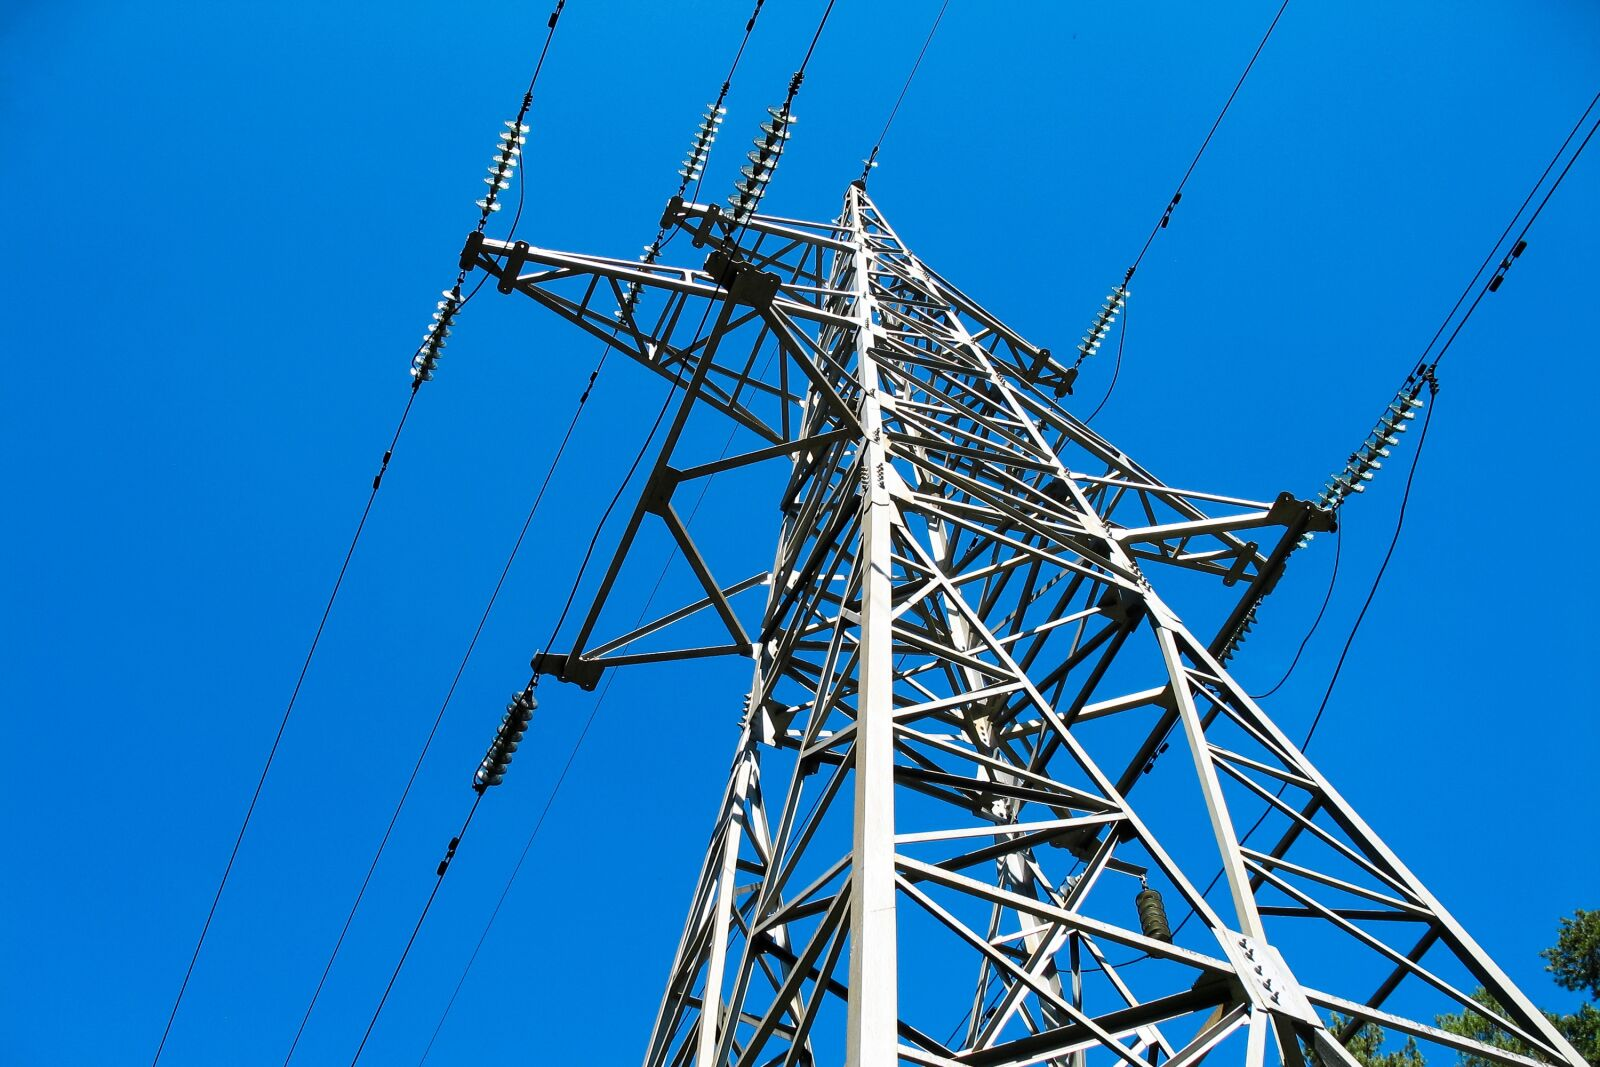 """Canon POWERSHOT A620 sample photo. """"Electricity, transmission towers, wire"""" photography"""